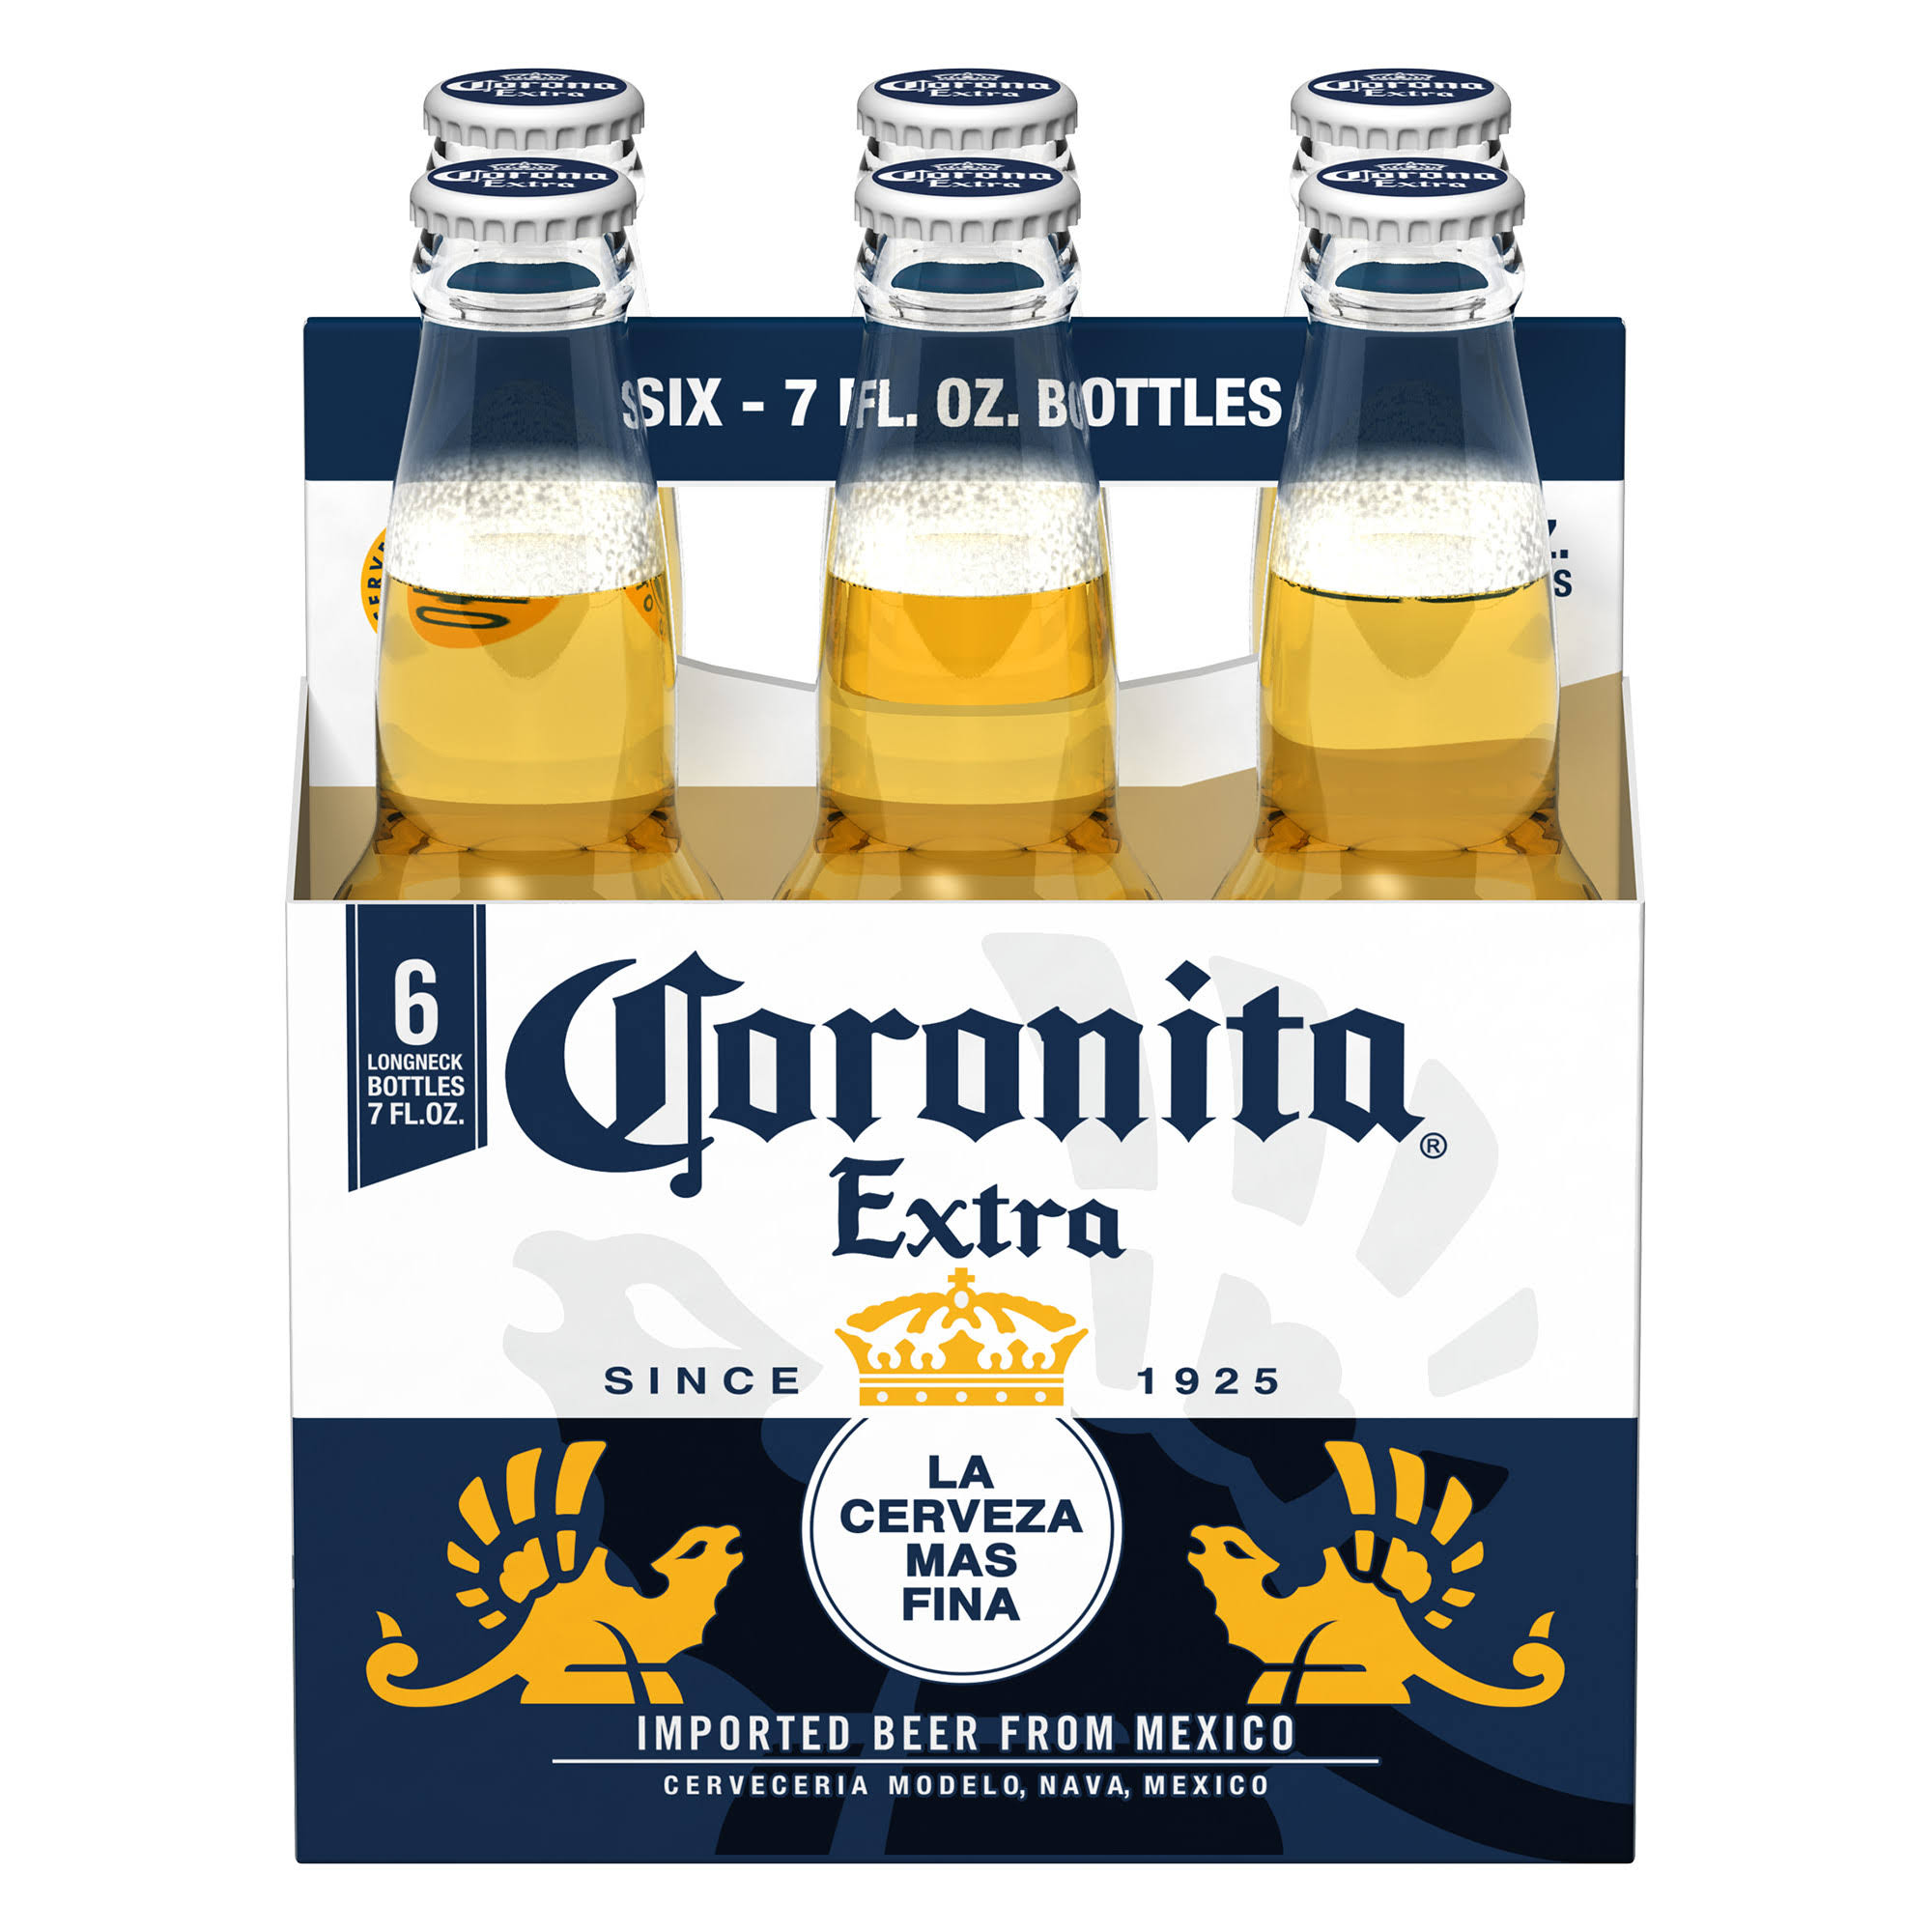 Coronita Extra Beer - 6 pack, 7 fl oz bottles